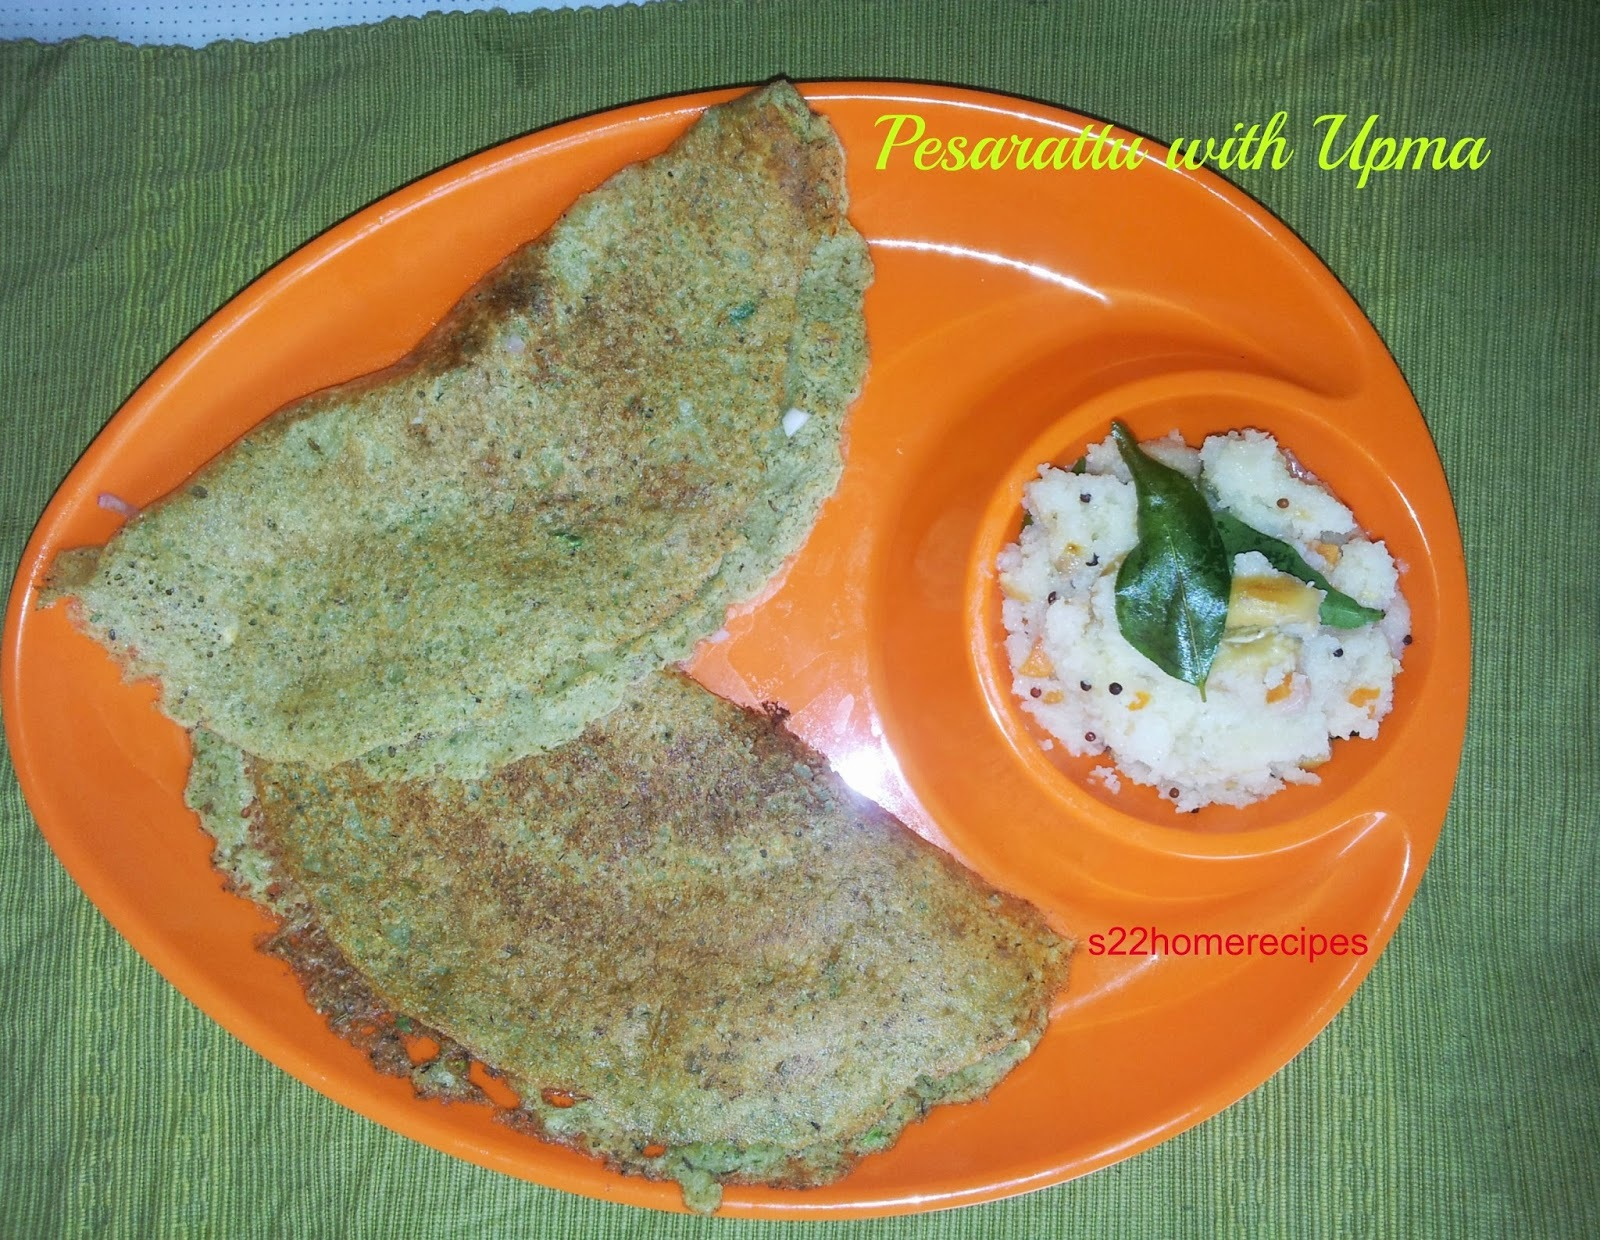 Pesarattu with Upma